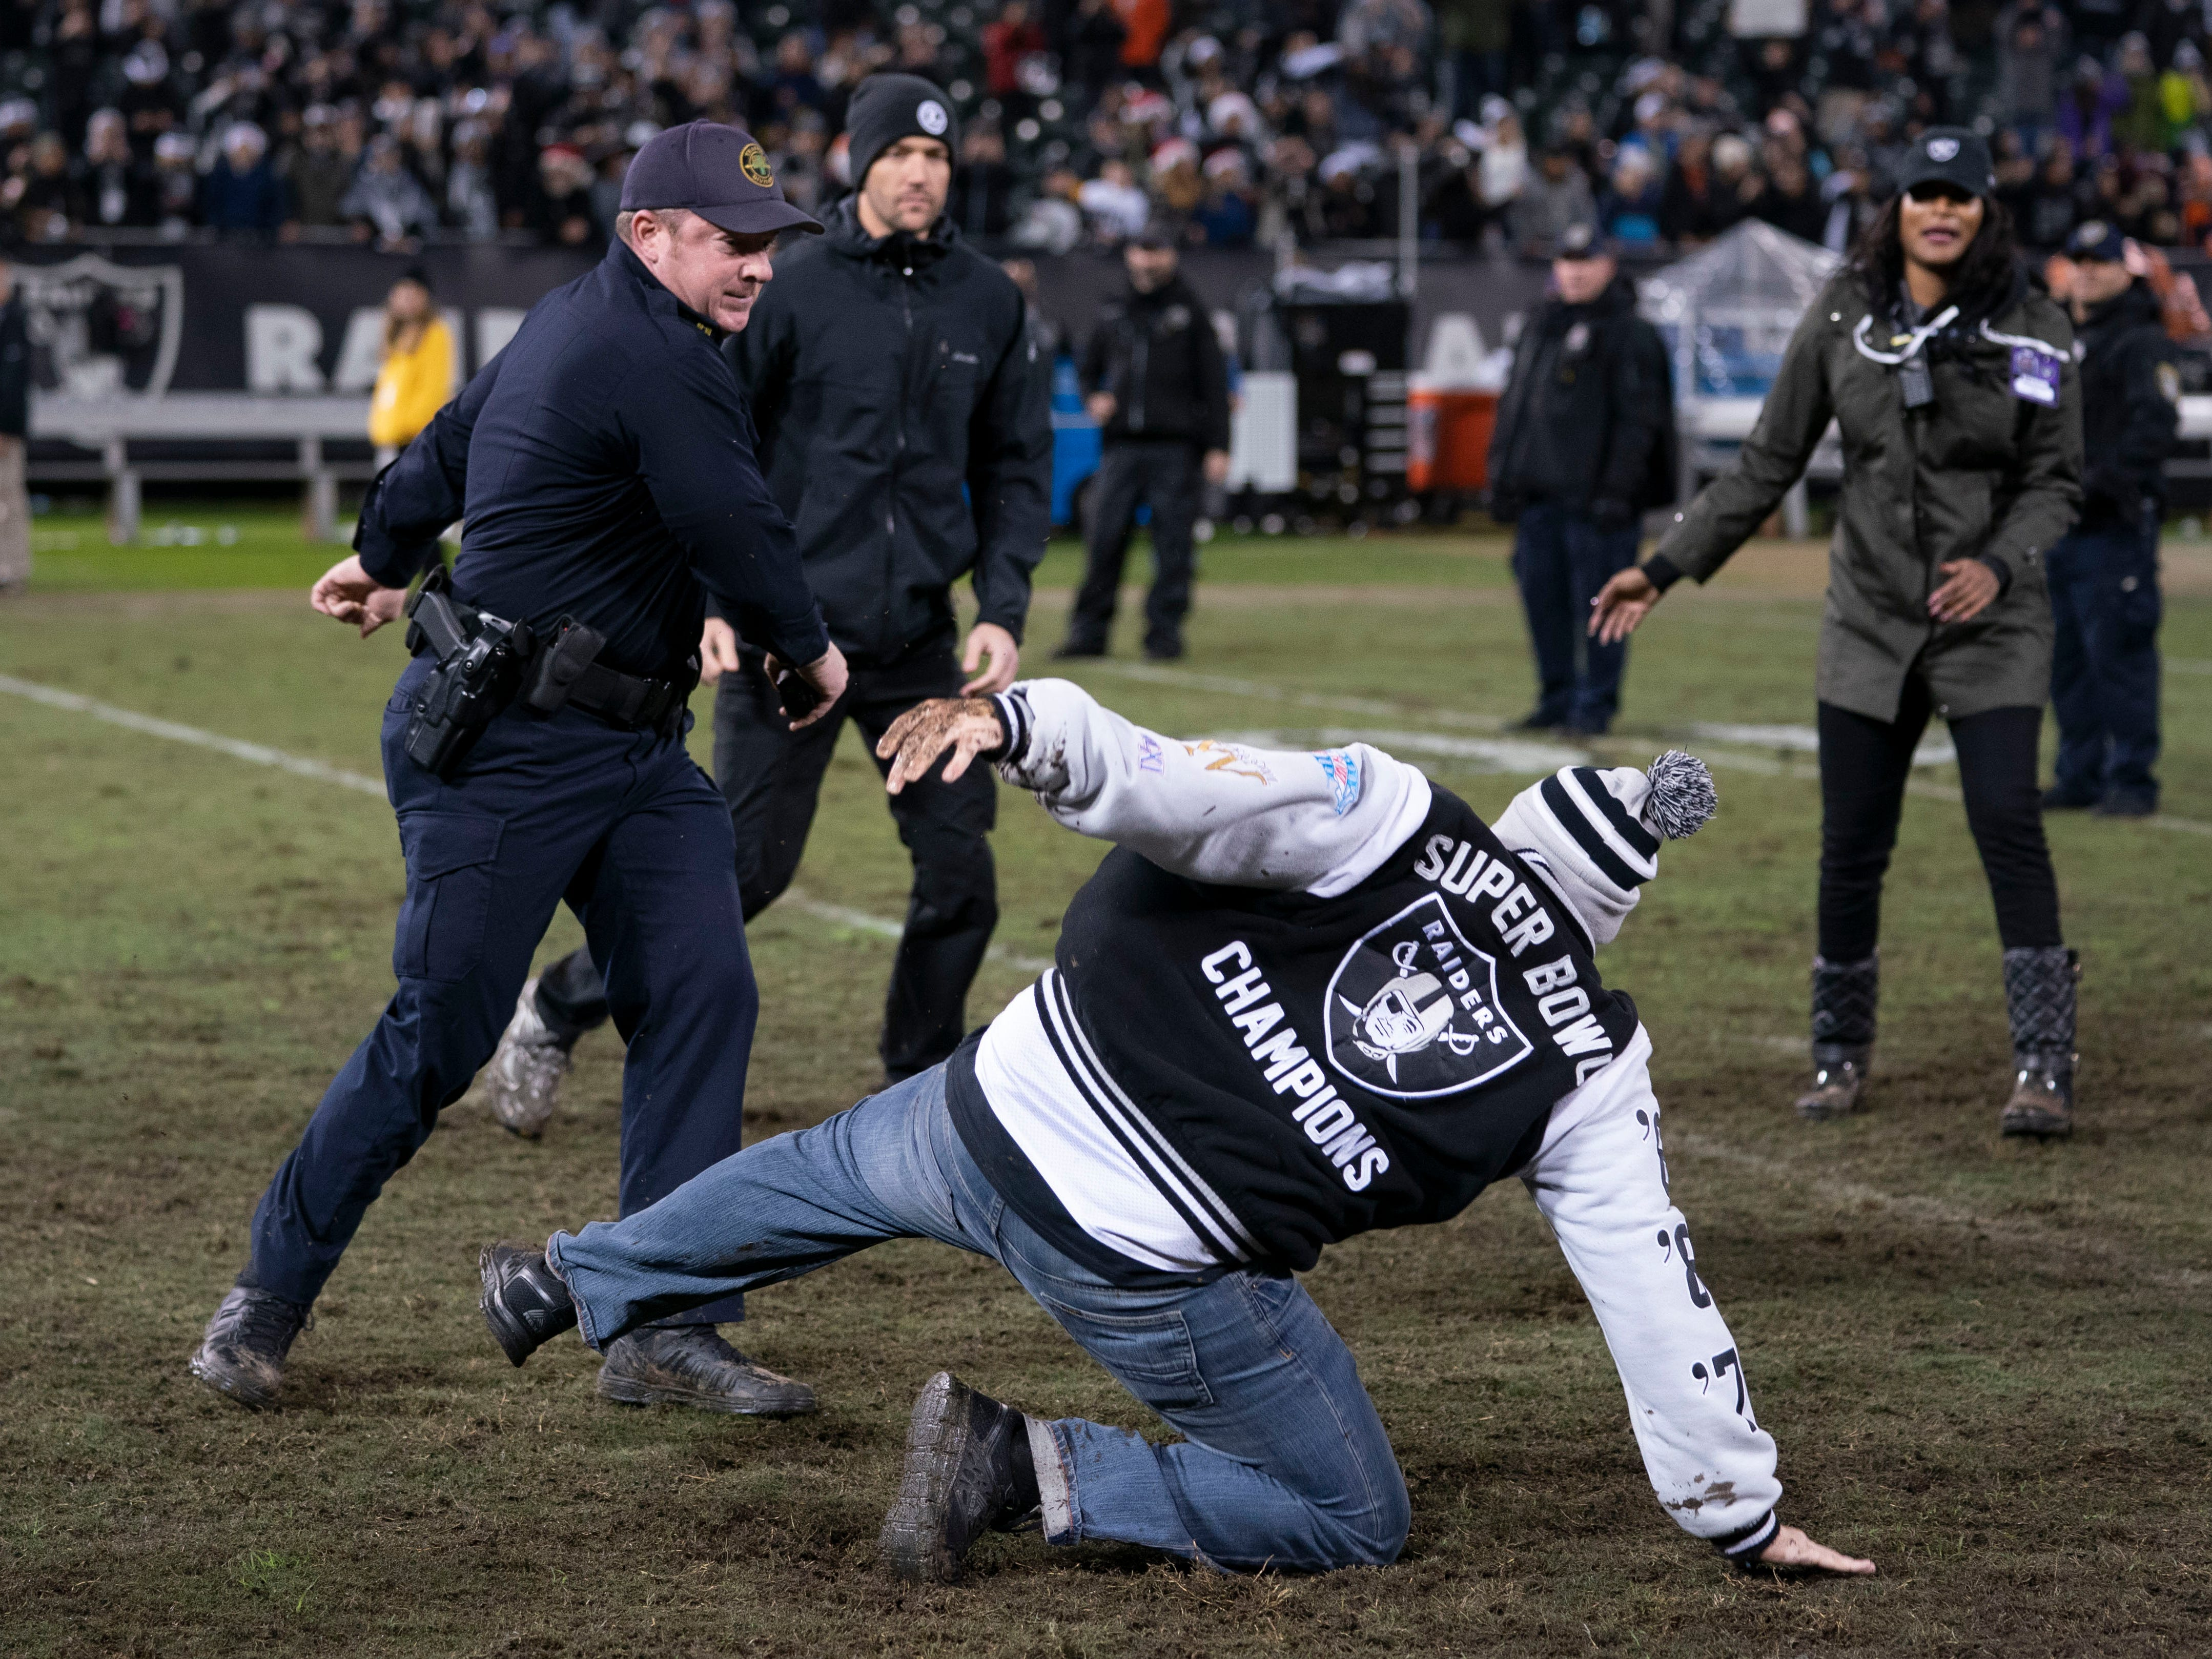 An Oakland Raiders fan runs onto the field after the game against the Denver Broncos at Oakland Coliseum.